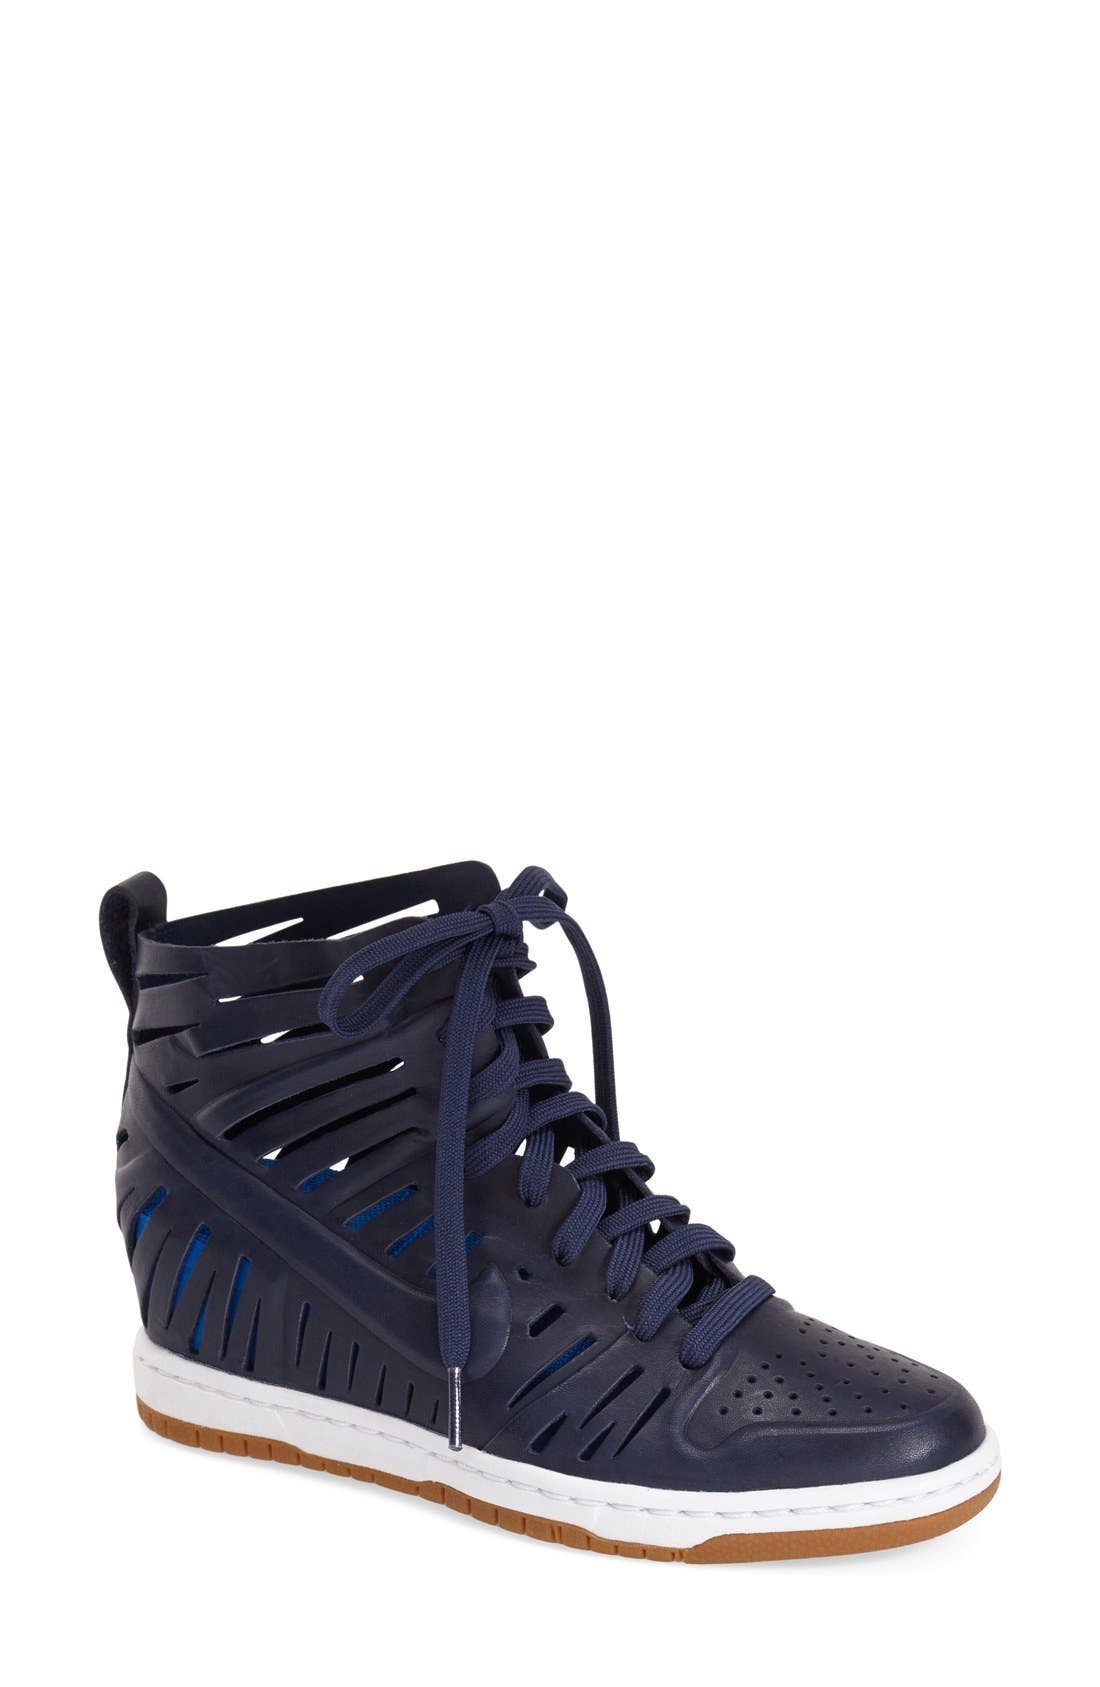 Alternate Image 1 Selected - Nike 'Dunk Sky Hi Joli' Hidden Wedge Sneaker (Women)